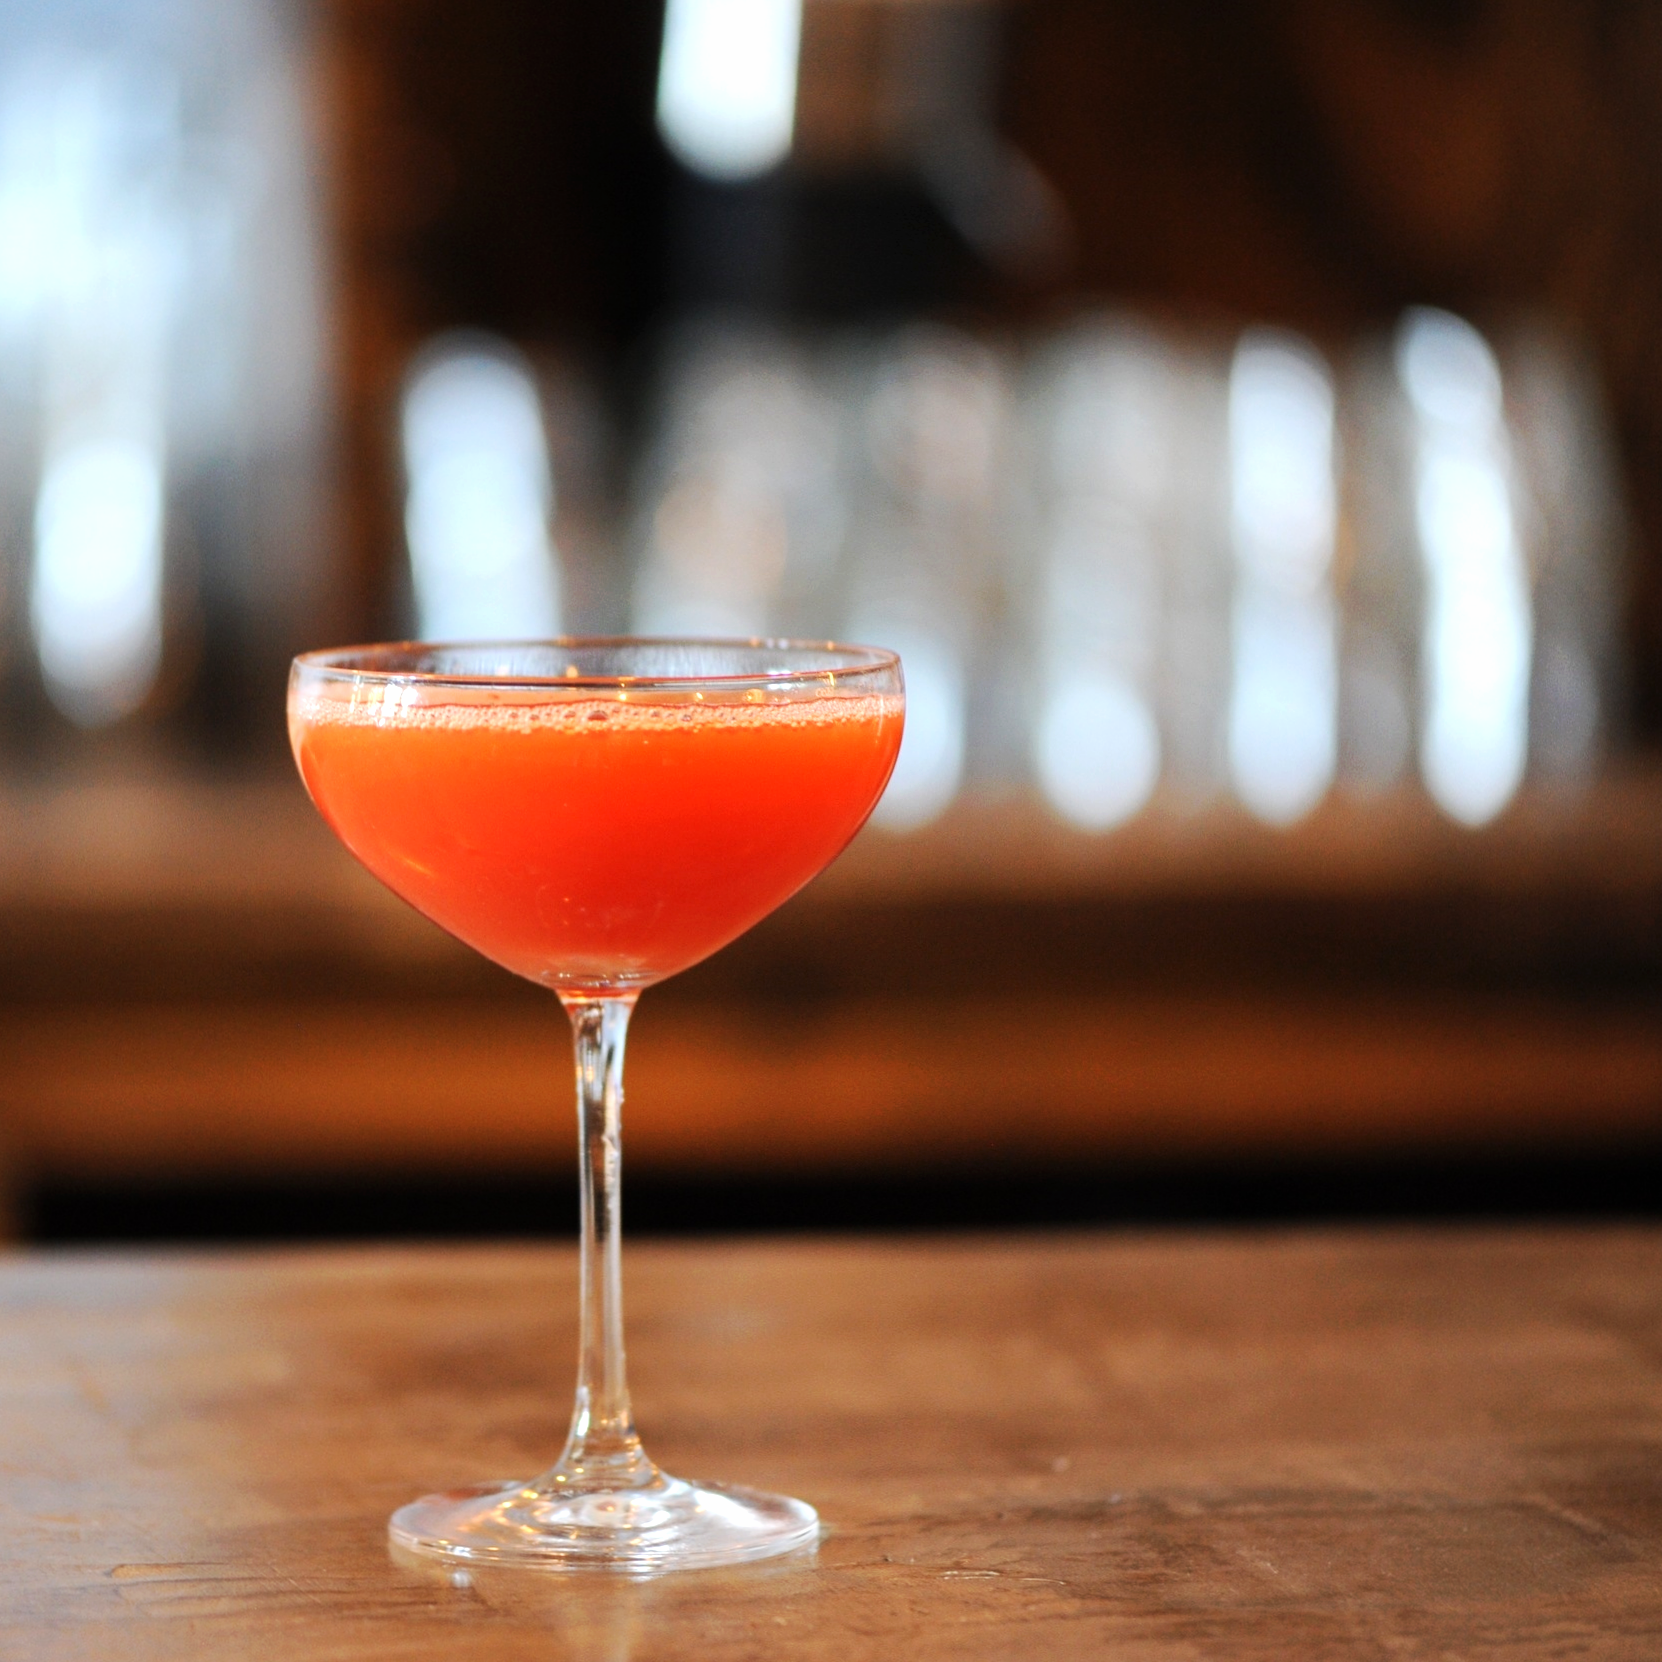 the-cocktail-experiment-syrups-chicory-arrowhead